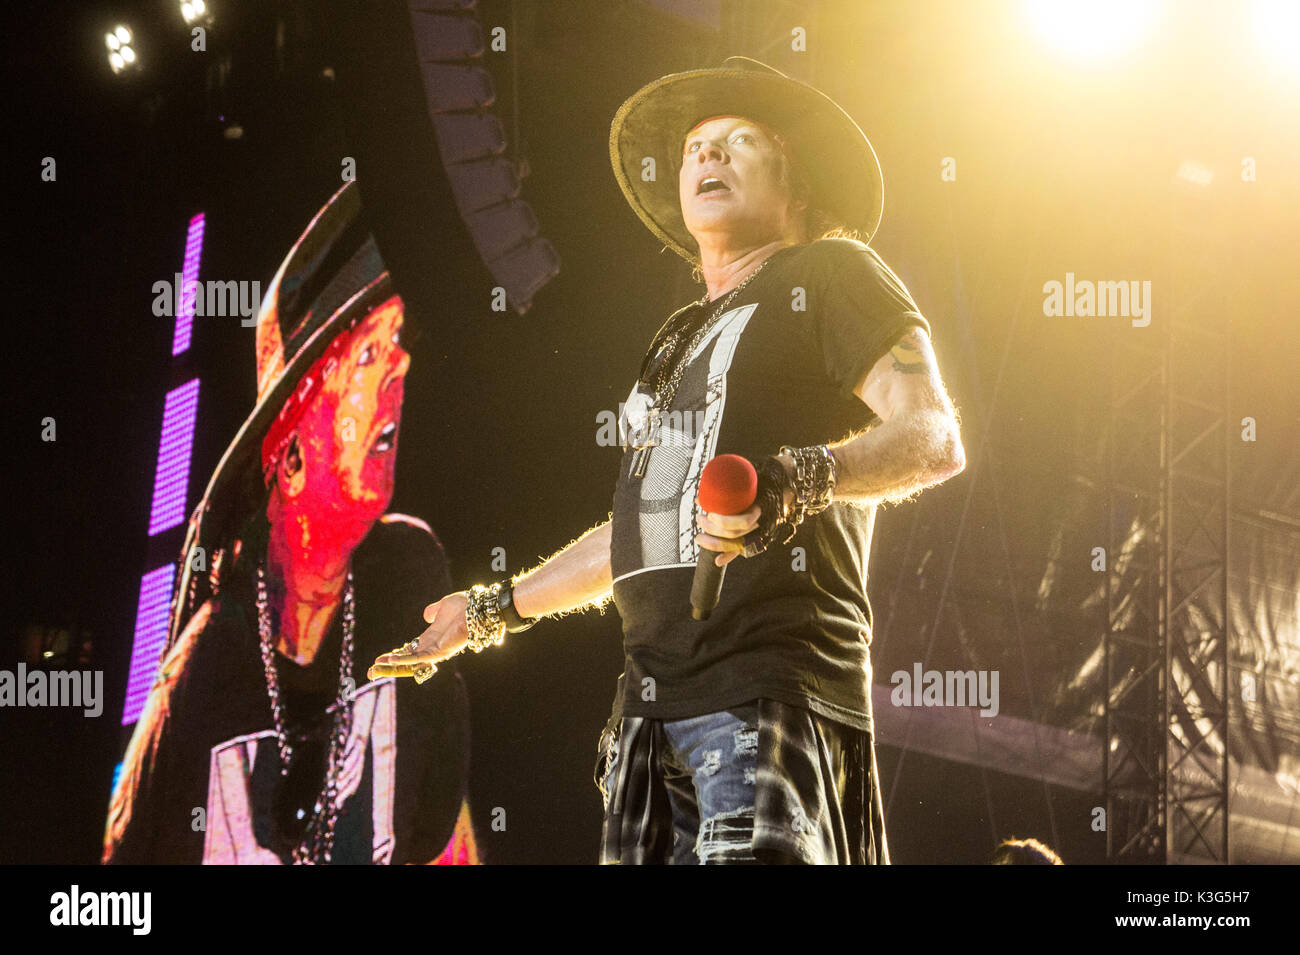 axl rose guns roses performing stock photos axl rose guns roses performing stock images alamy. Black Bedroom Furniture Sets. Home Design Ideas